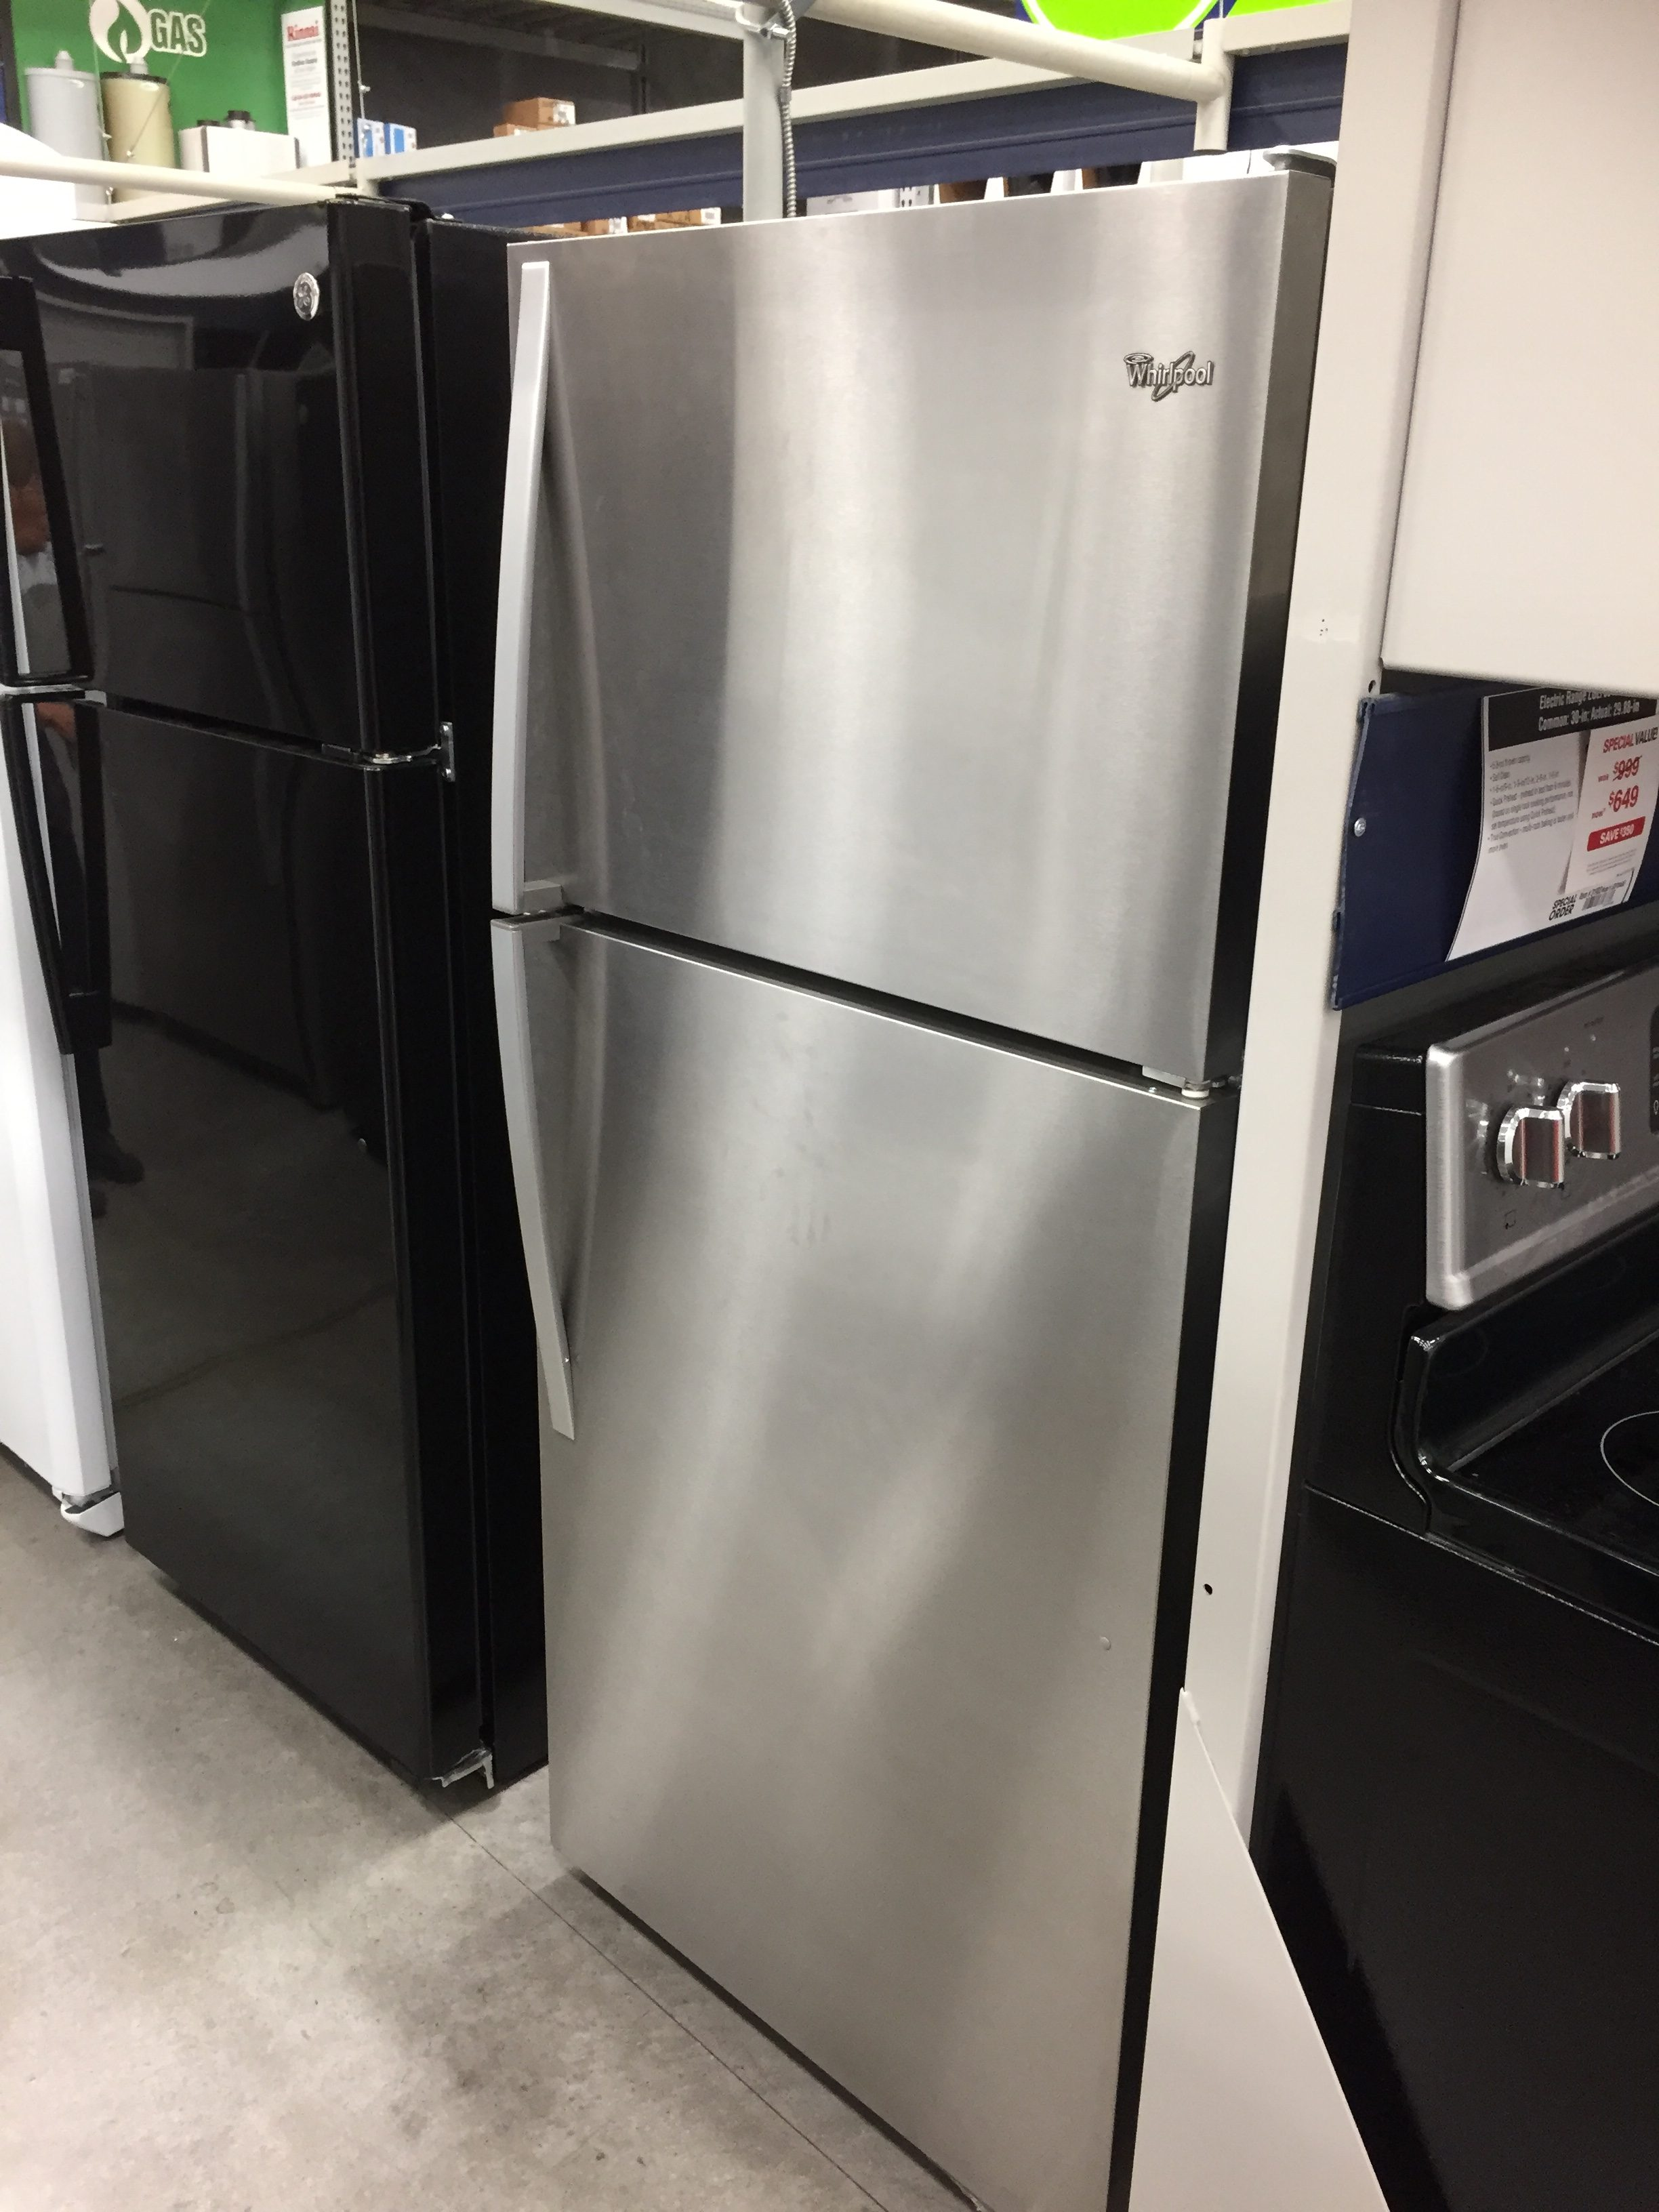 Lowe's fridge $548. (Going to look Craigslist for used one.)